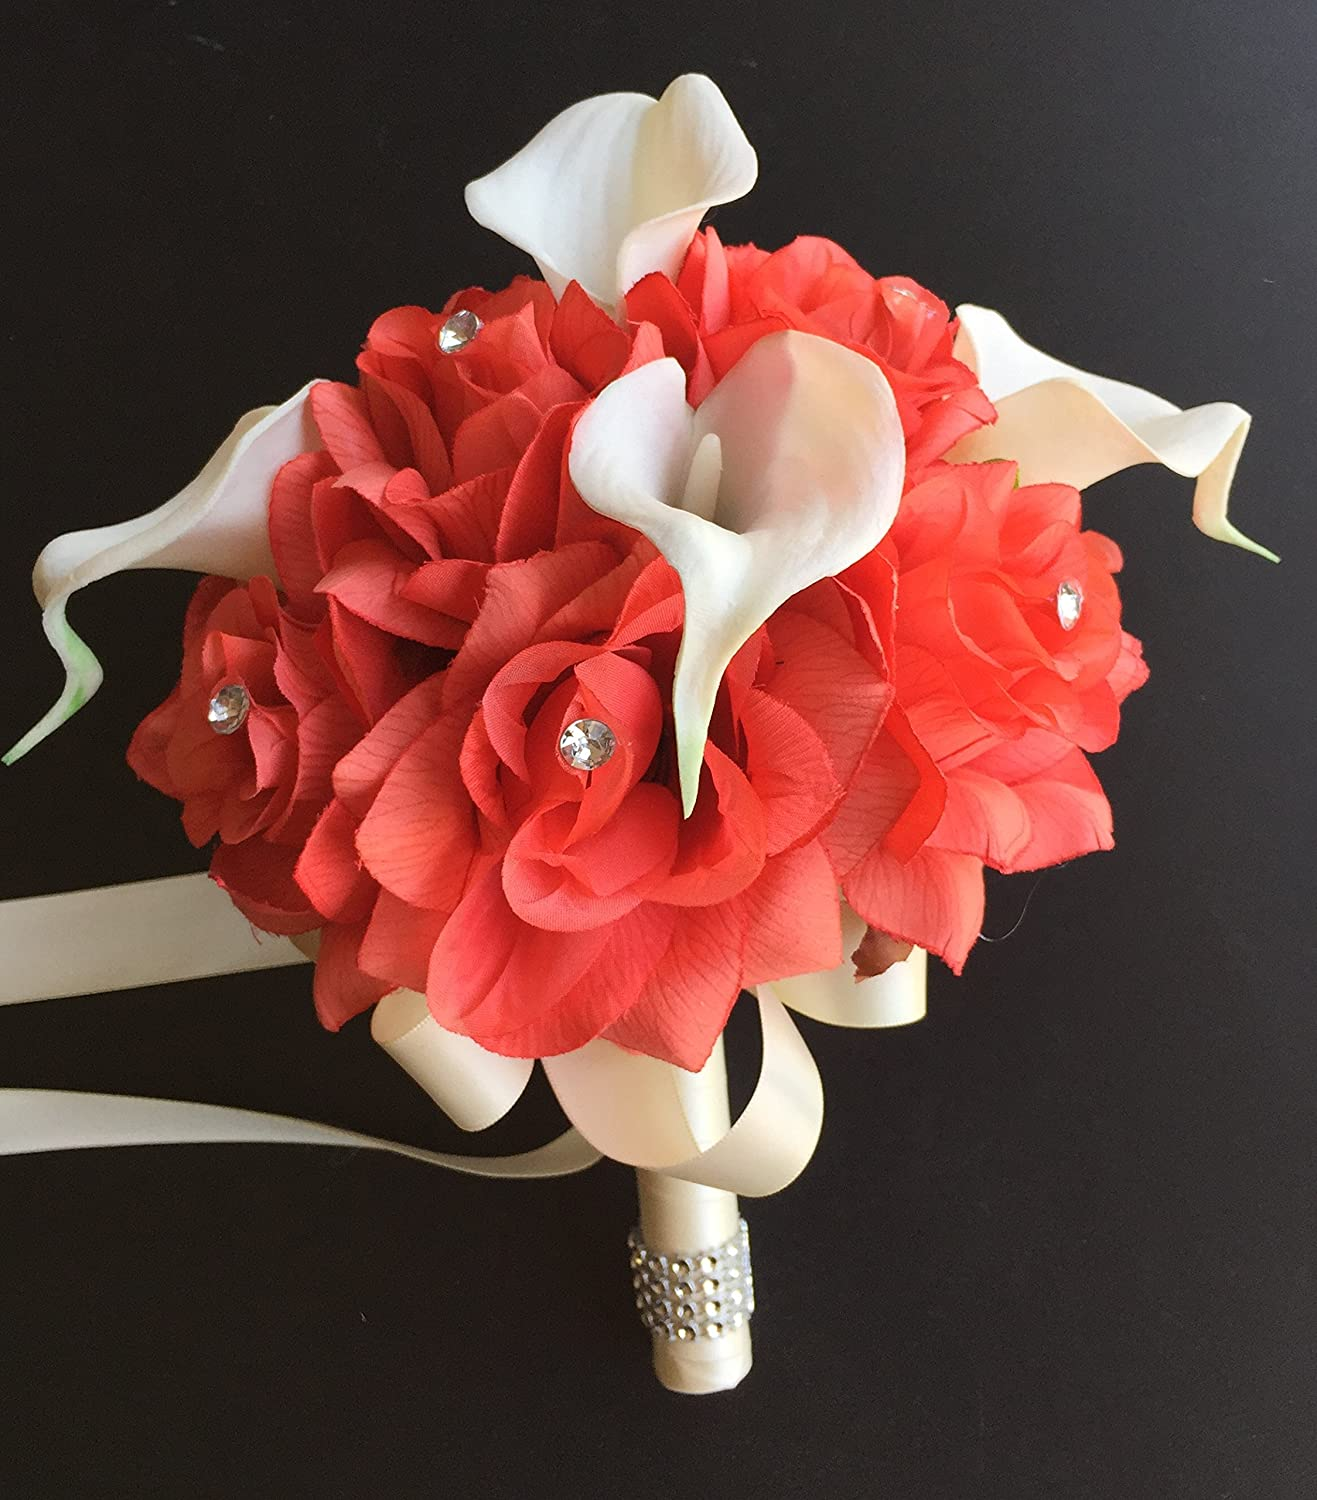 Amazon 8 wedding bouquet coral roses with ivory real touch amazon 8 wedding bouquet coral roses with ivory real touch calla lily artificial flowers home kitchen izmirmasajfo